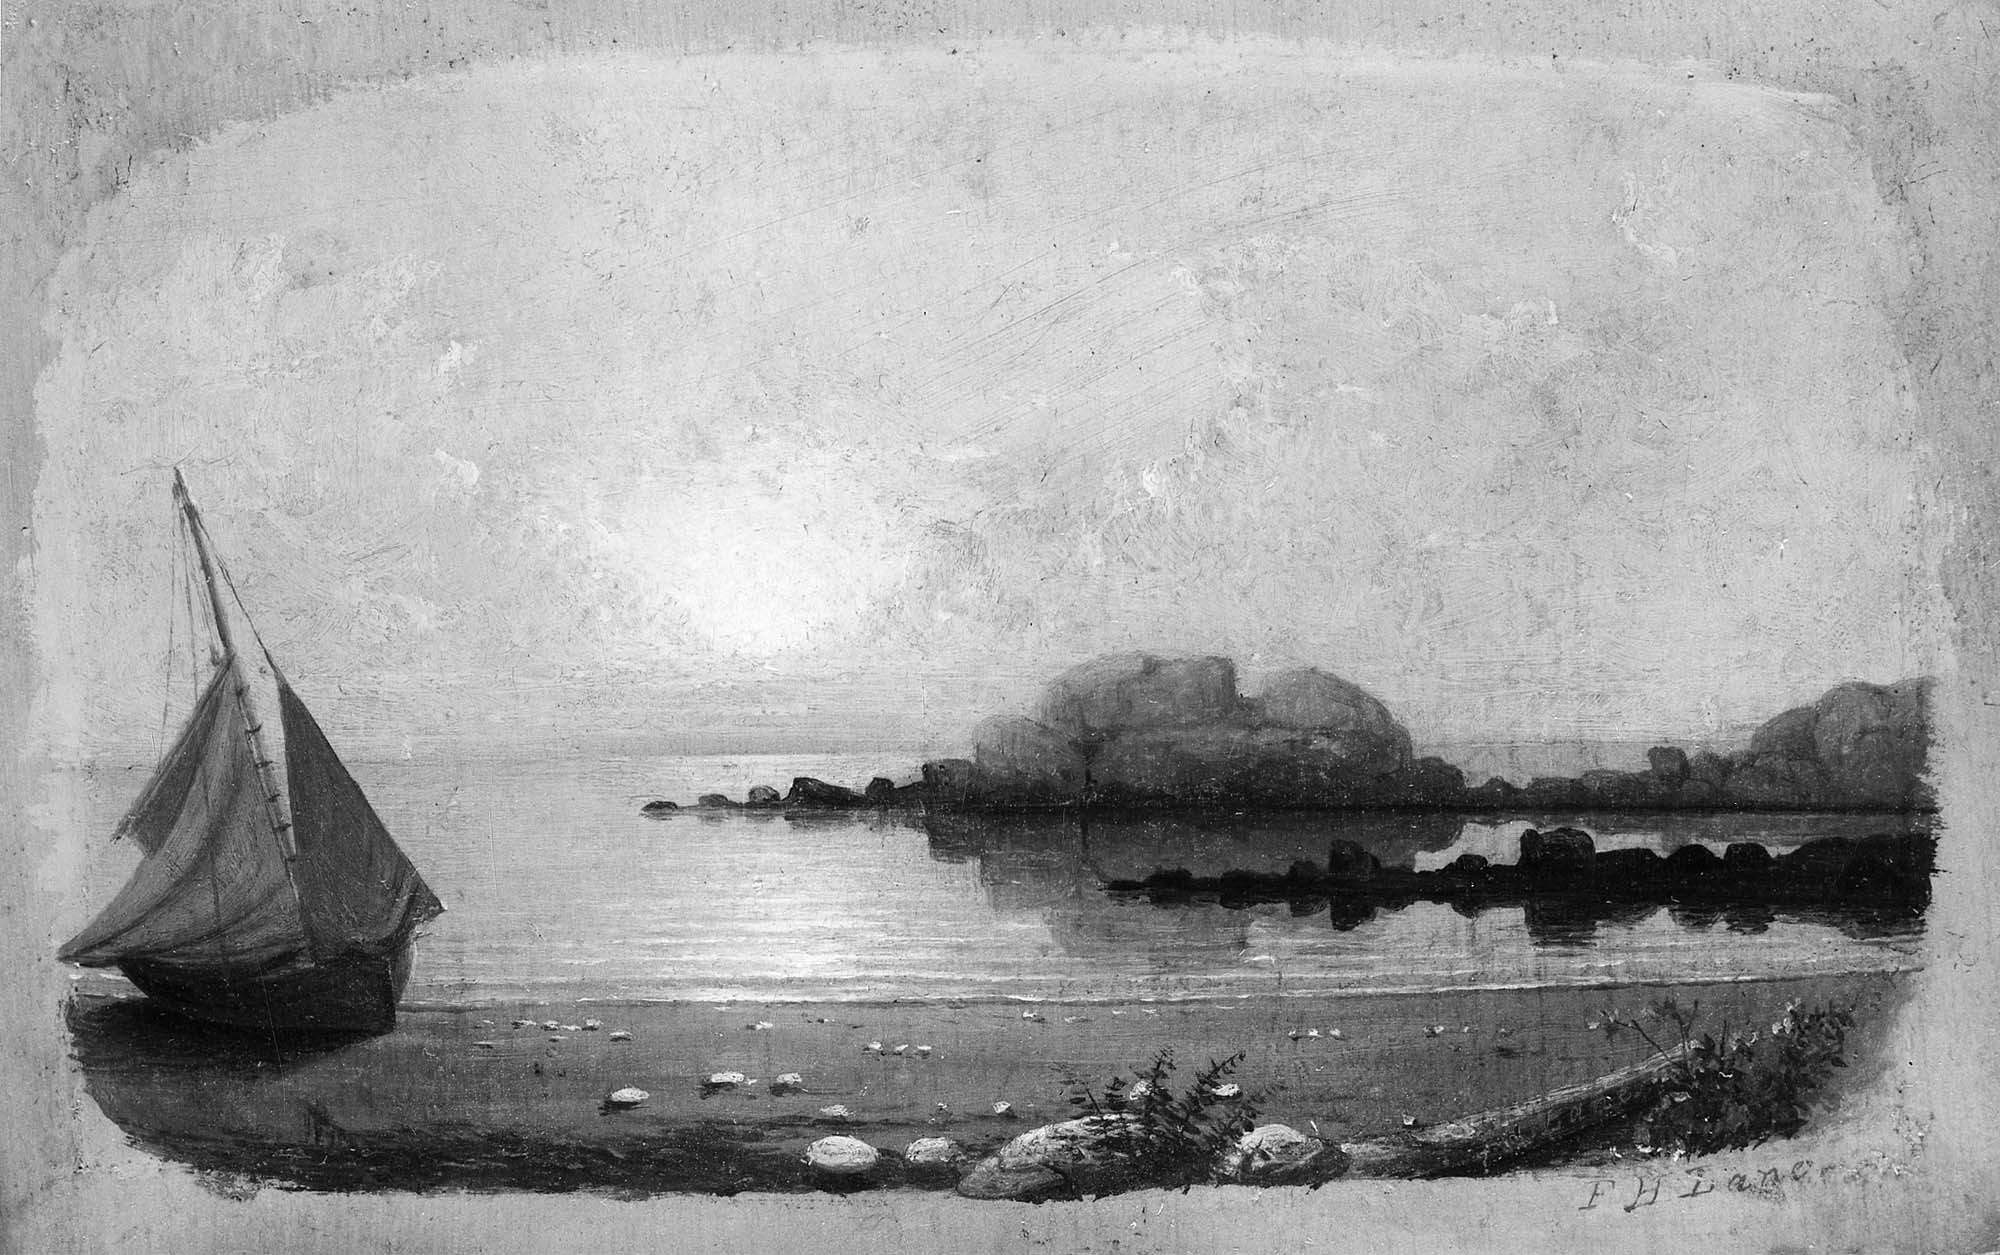 Brace's Rock, Eastern Point (not published), 5 1/4 x 8 1/2 in. Private Collection.